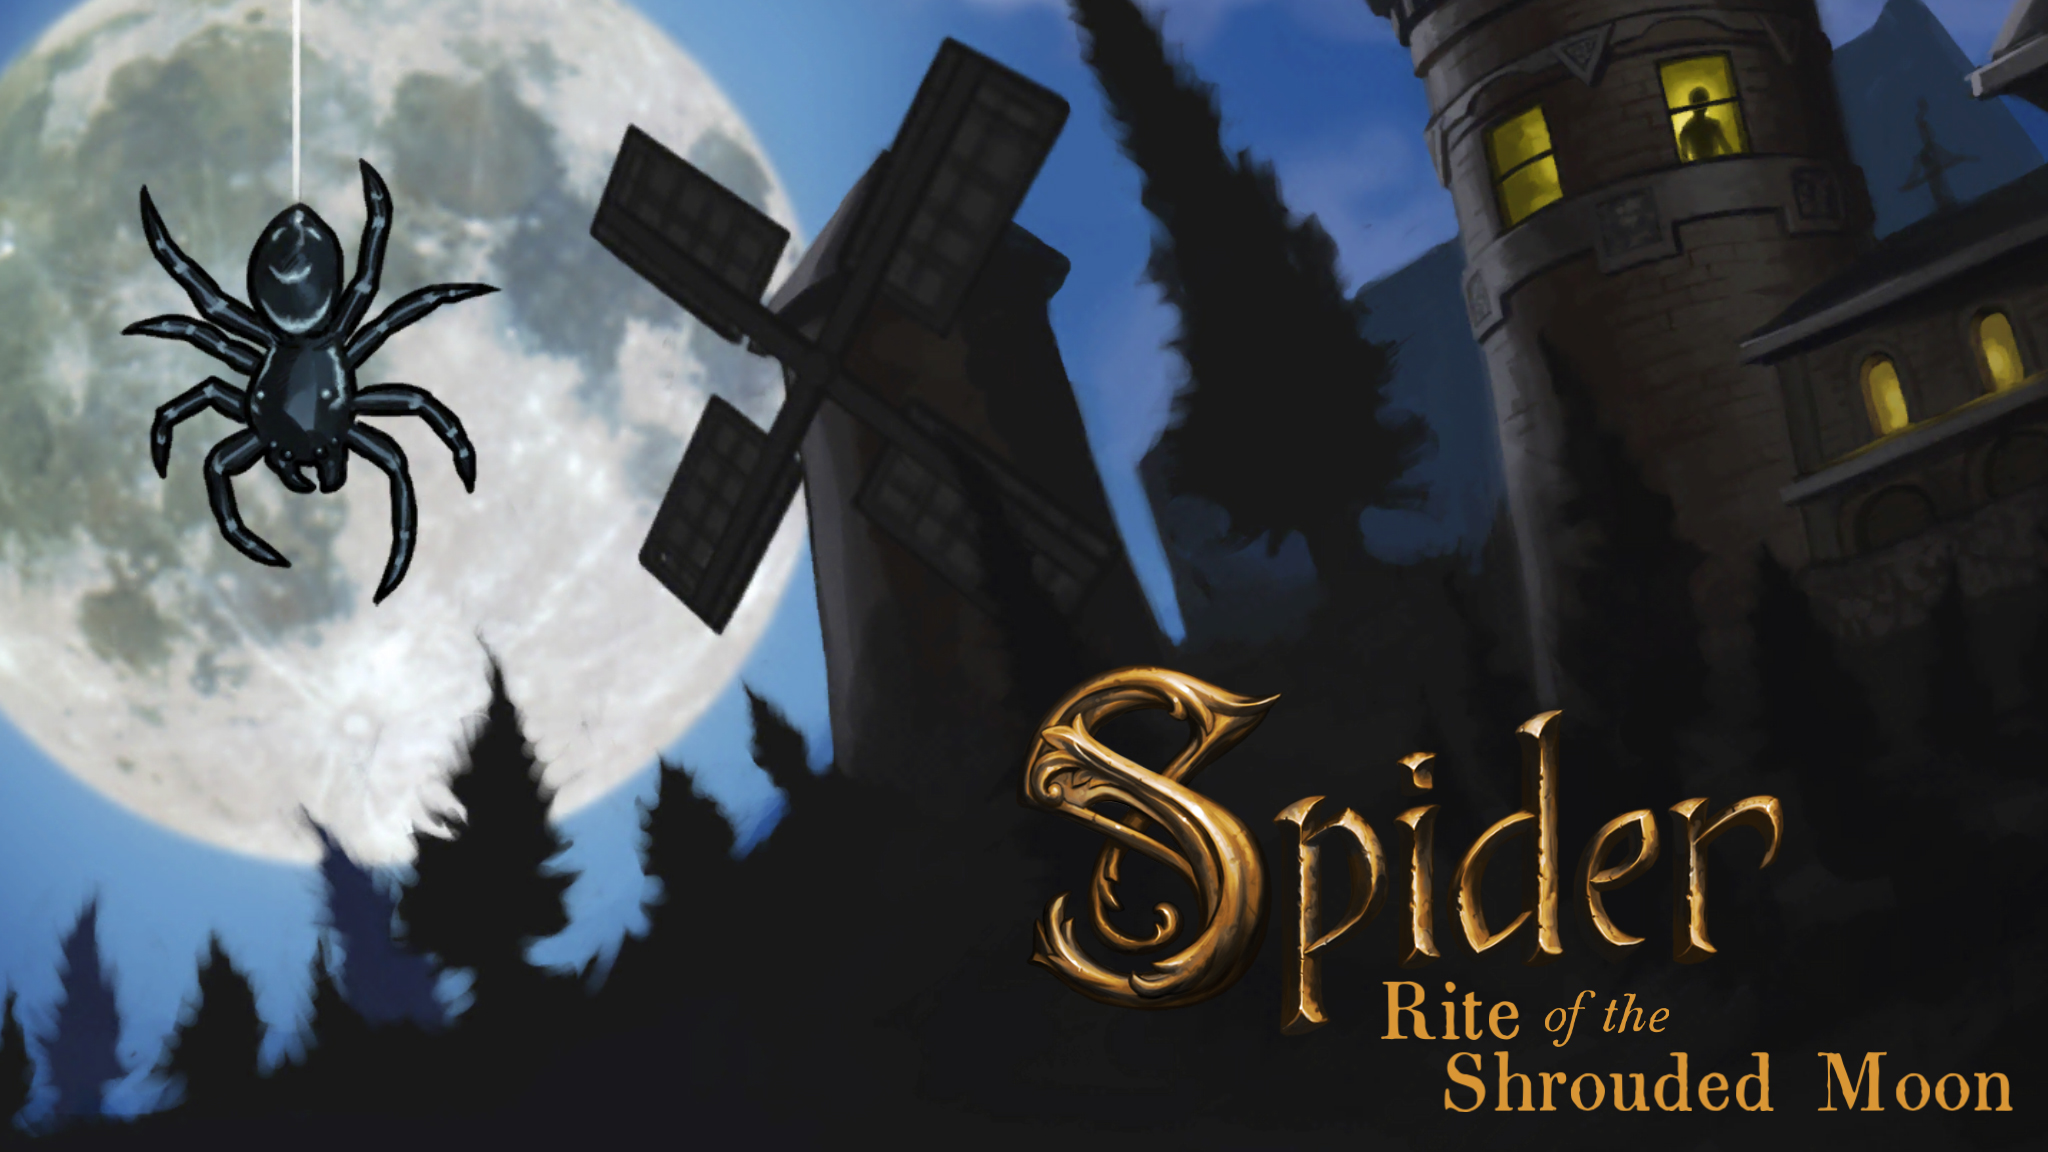 Spider Rite of Shrouded Moon